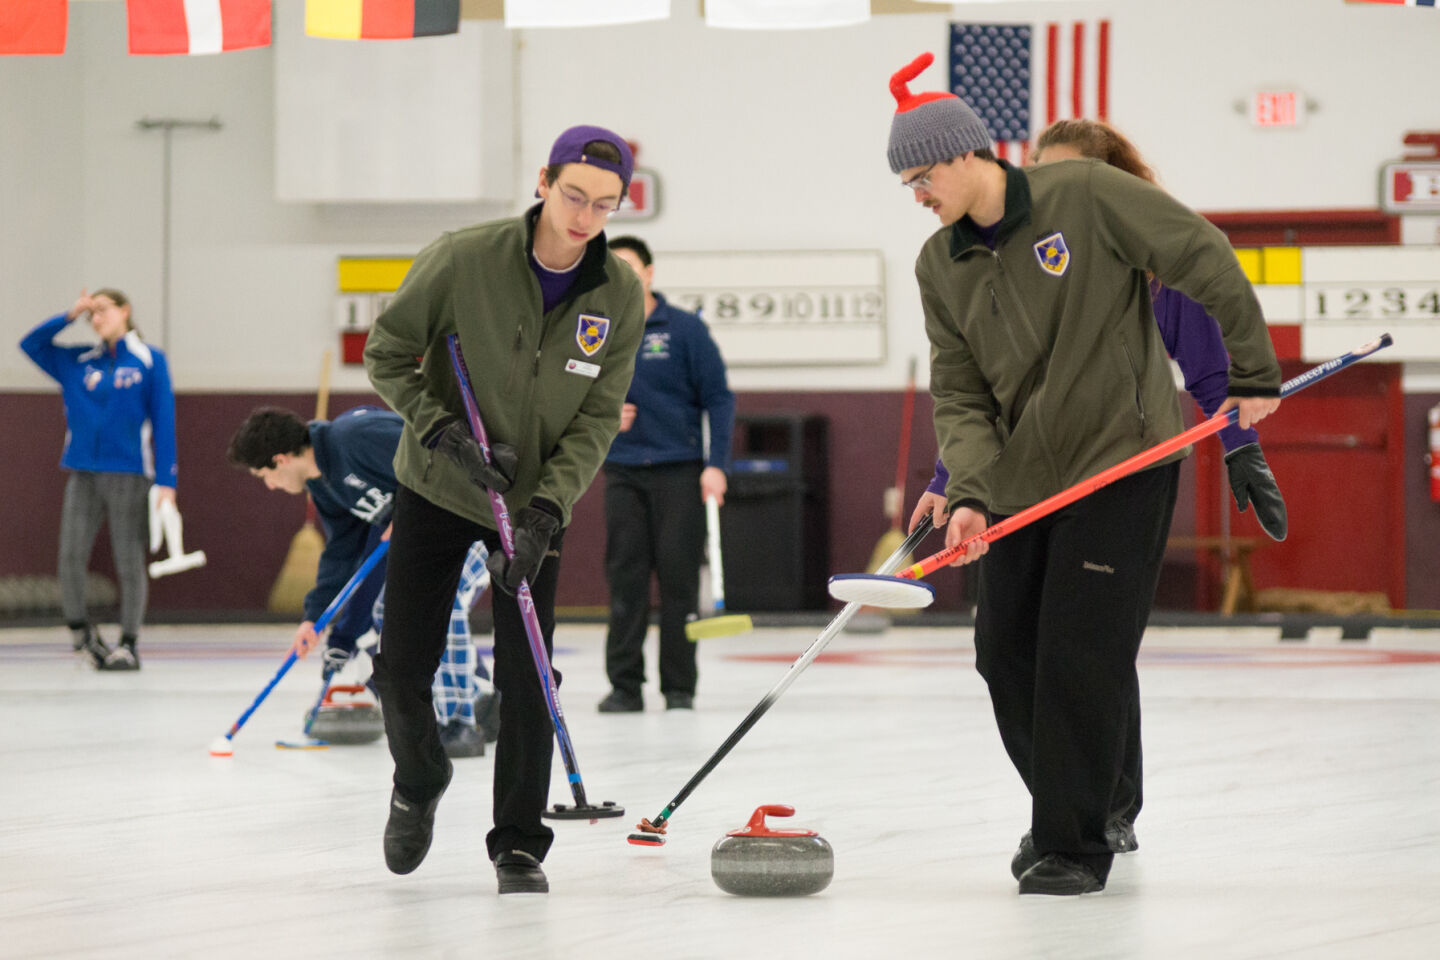 2018 USA College Curling Championships